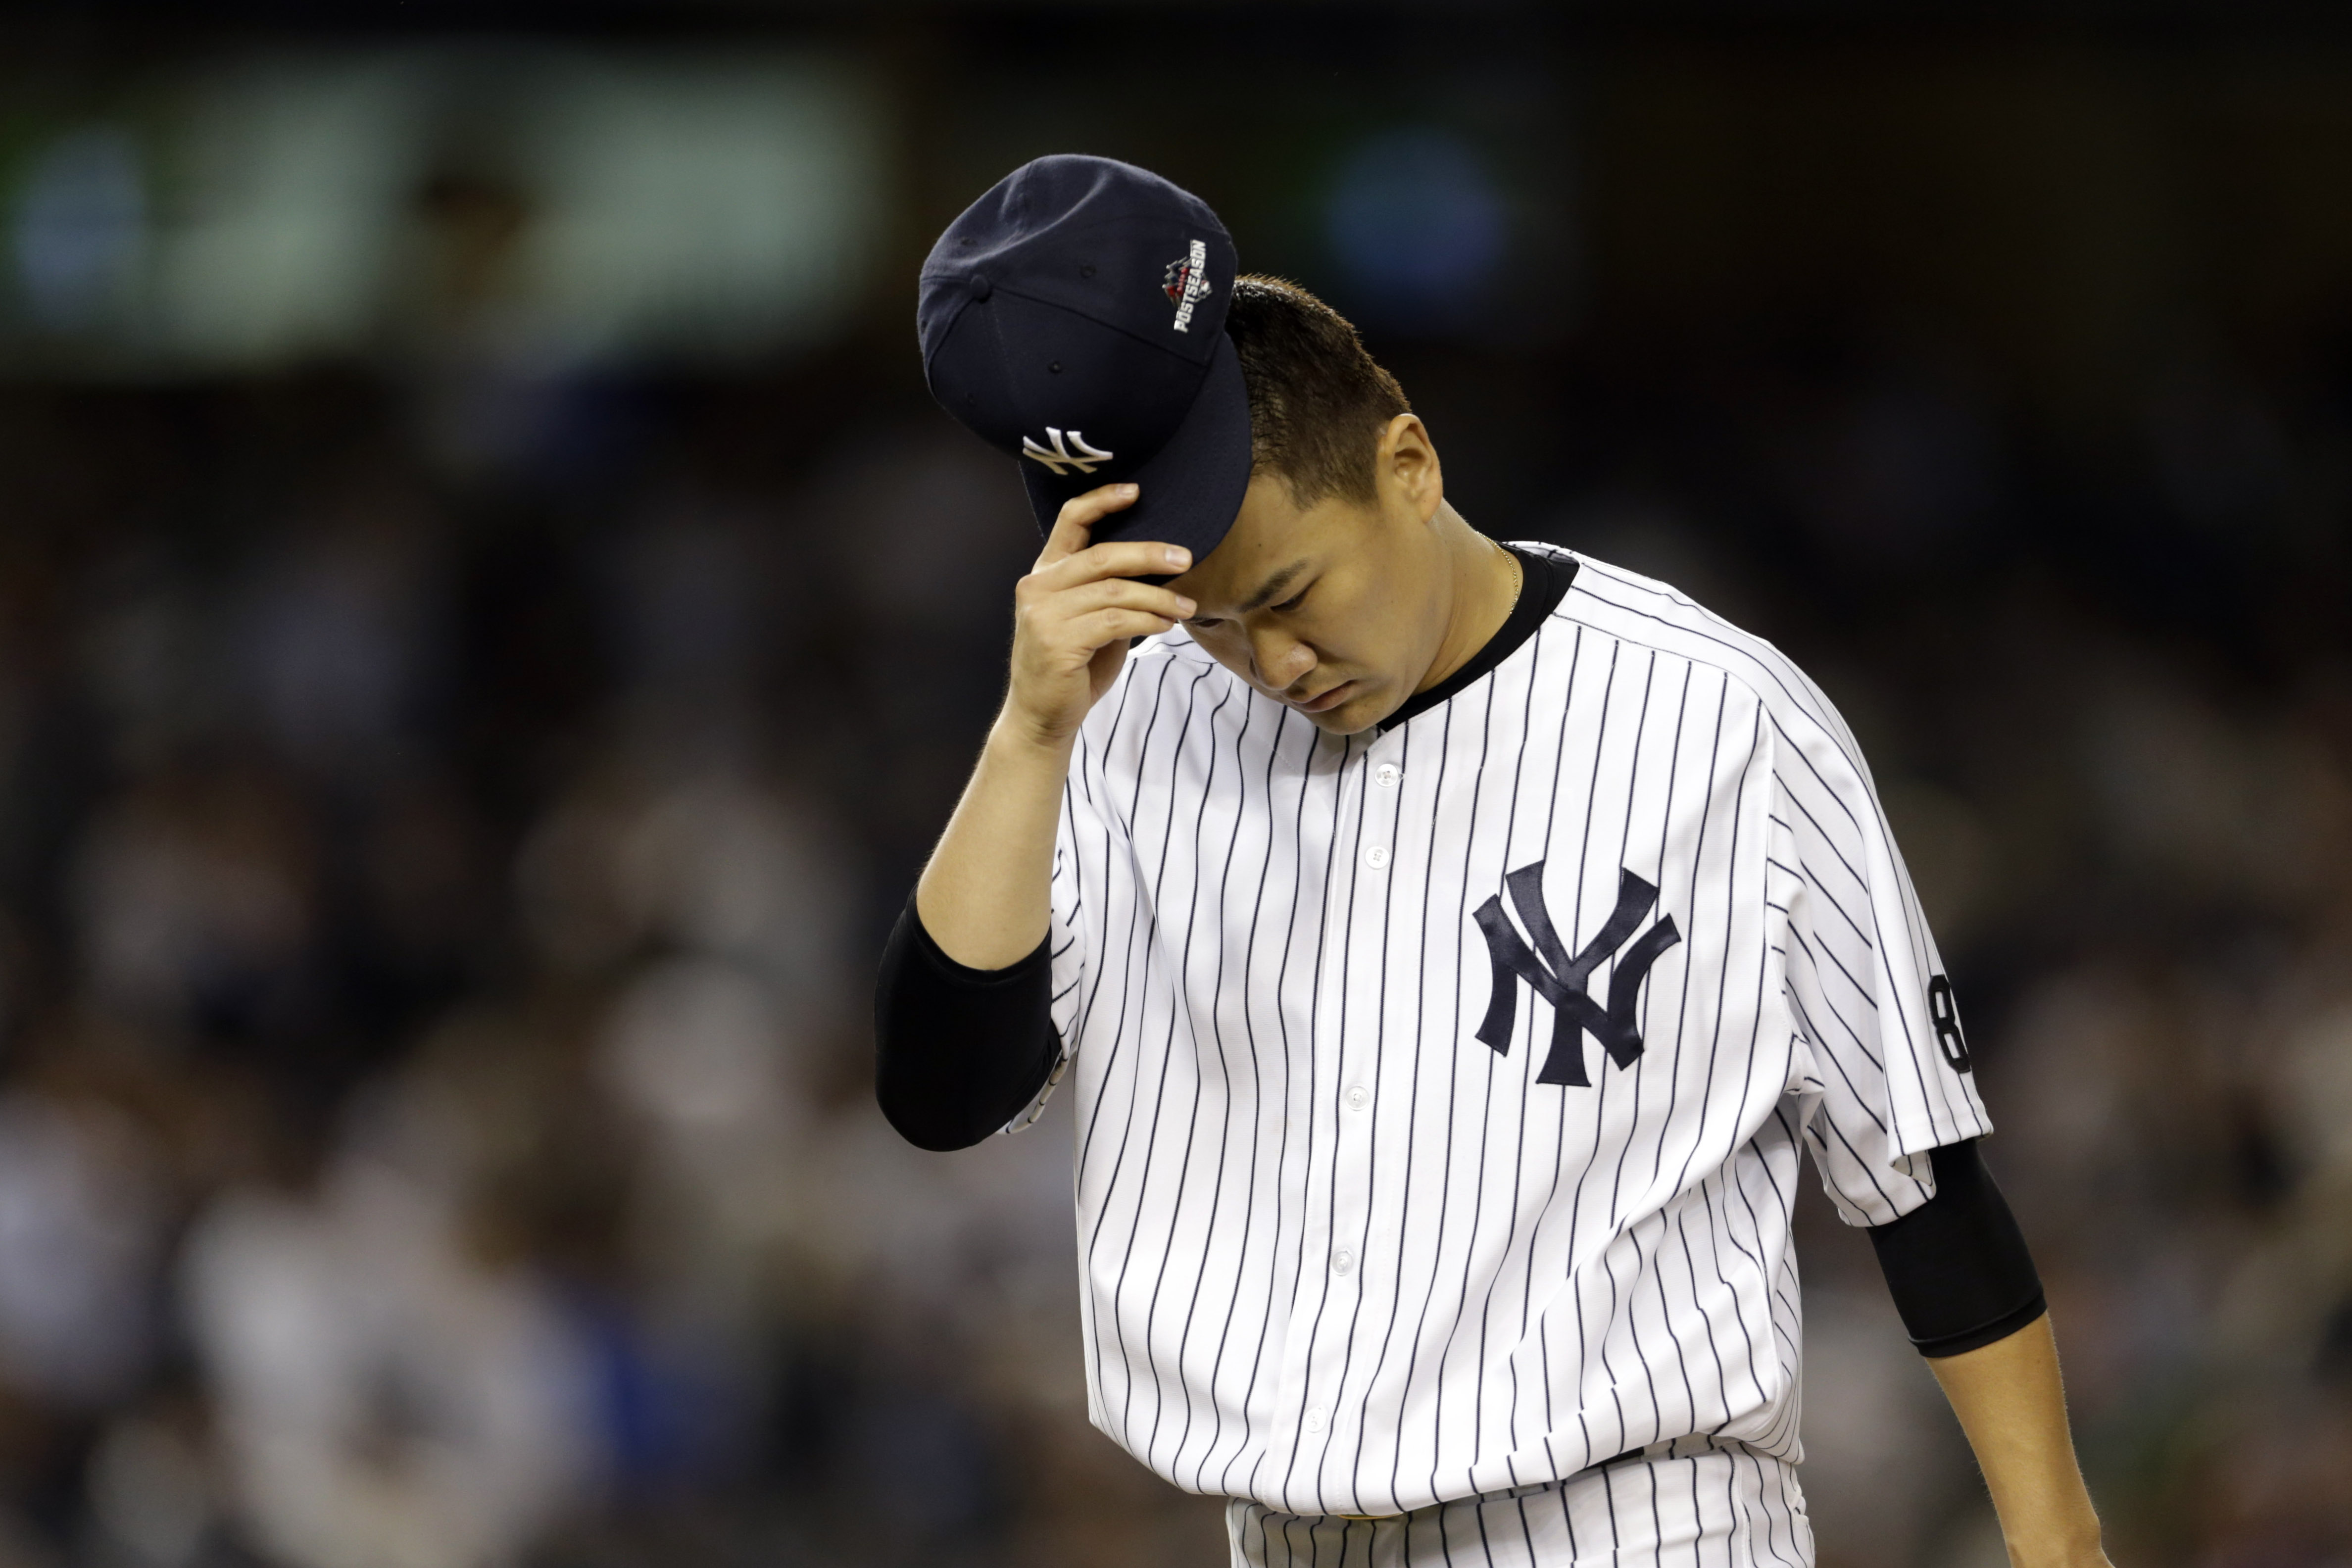 Yankees starter Masahiro Tanaka reacts after the second inning of the AL wildcard game at Yankee Stadium.   USA TODAY / REUTERS